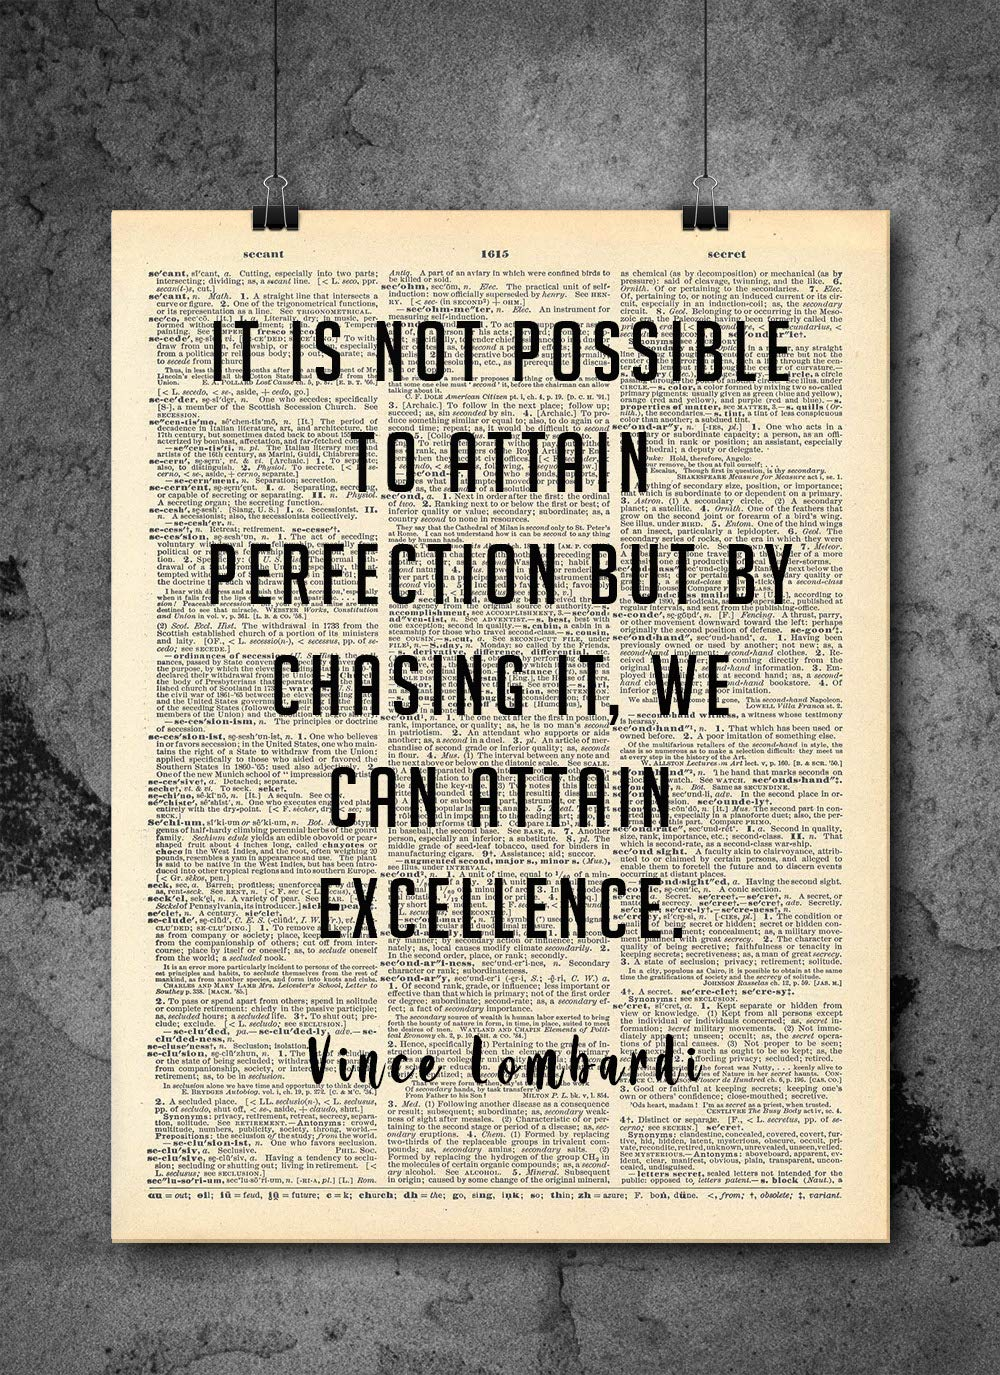 Vince Lombardi Perfection Vintage Quotes Authentic Upcycled Dictionary Art Print Home Or Office Decor Inspirational And Motivational Quote